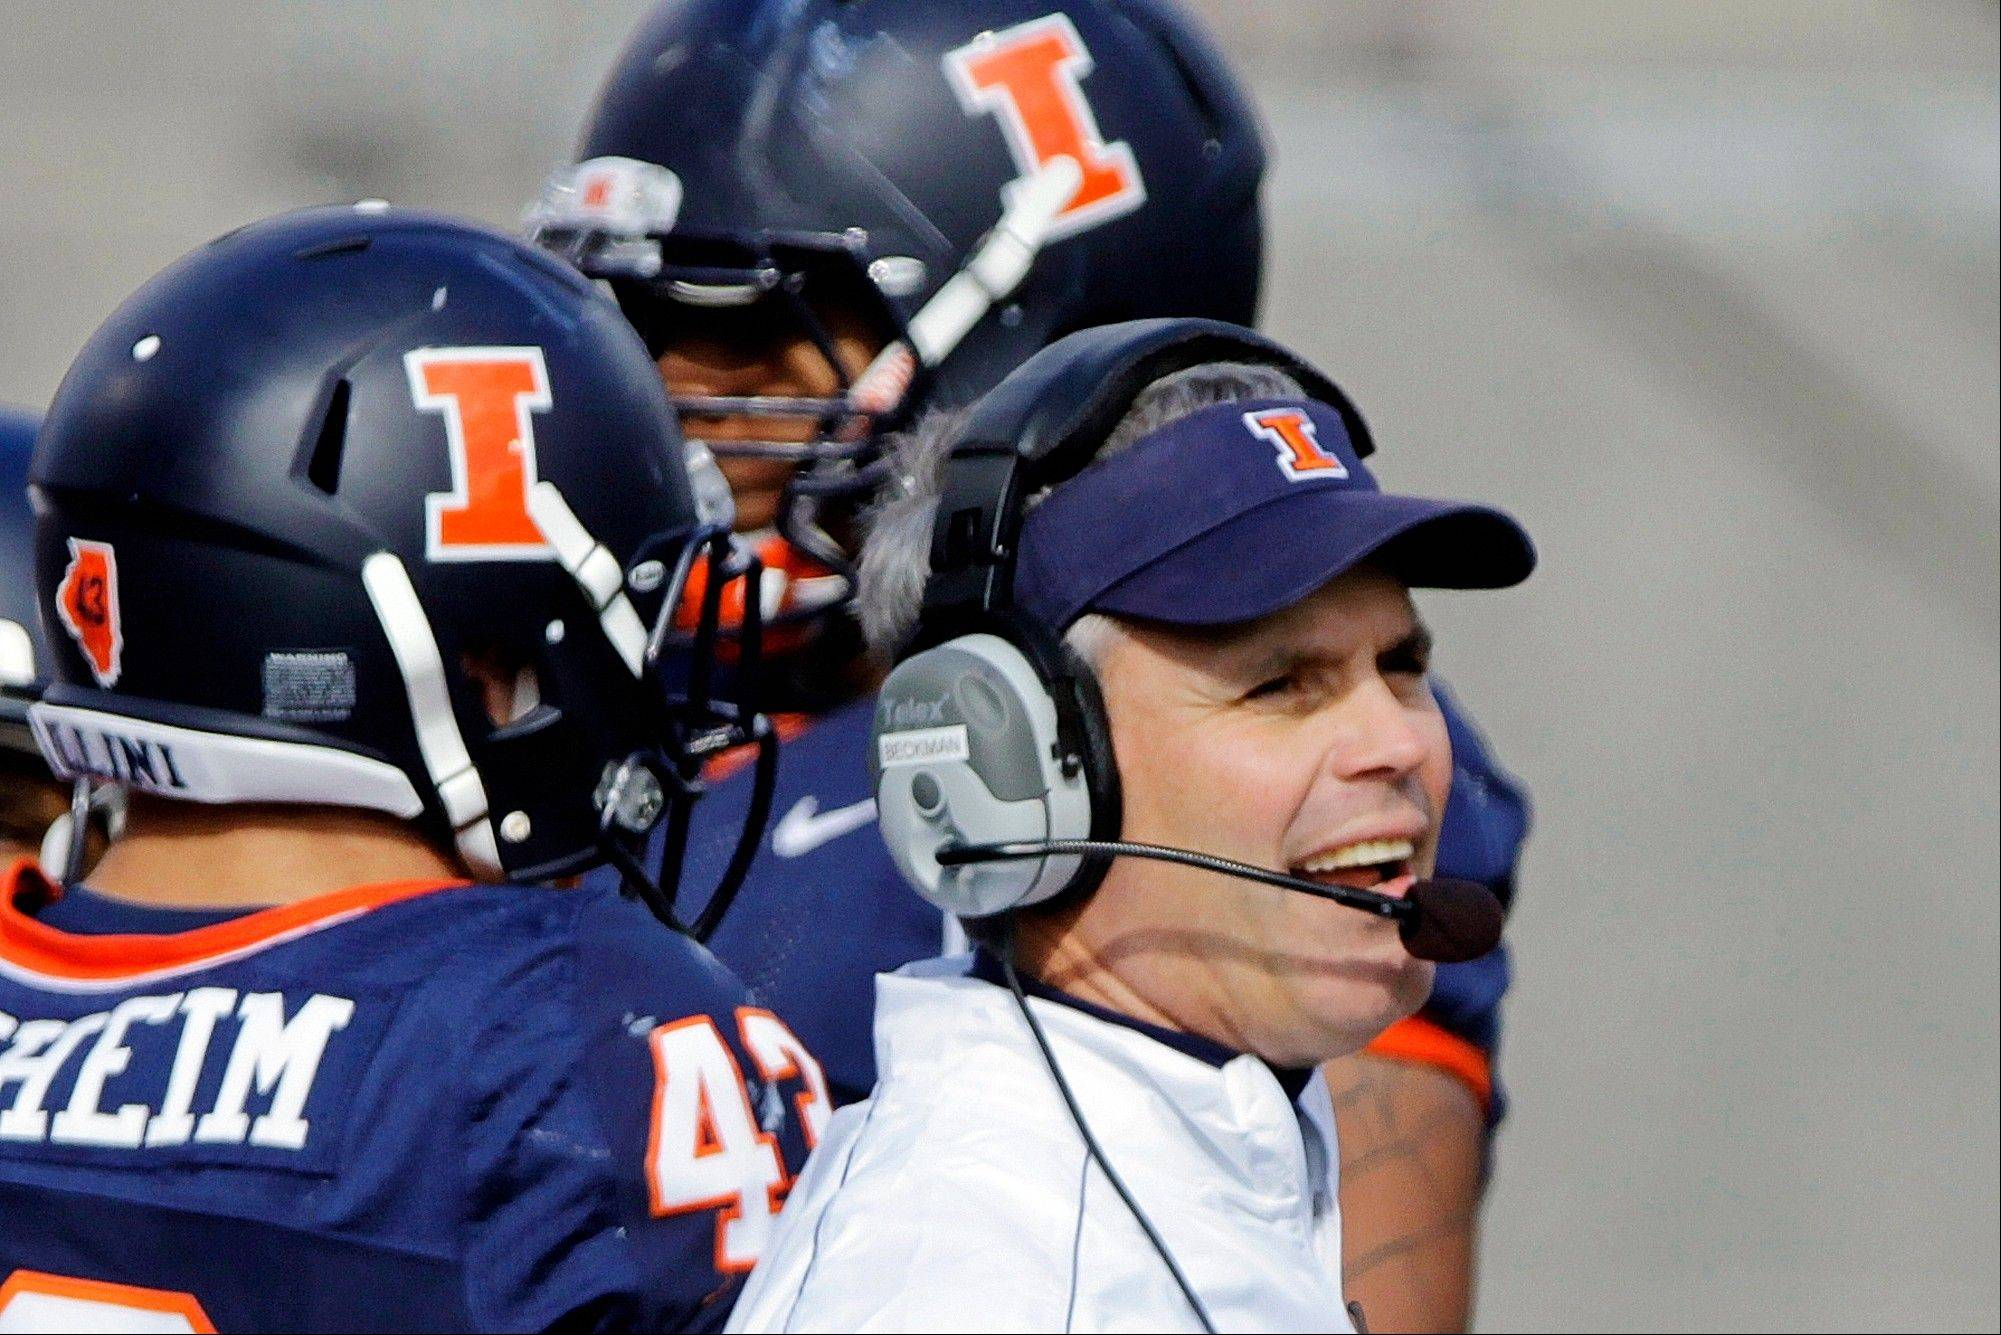 Illinois head coach Tim Beckman watches from the sidelines Saturday during the second half against Indiana in Champaign. Illinois will try to break their five-game losing streak on the road Saturday against Ohio State.